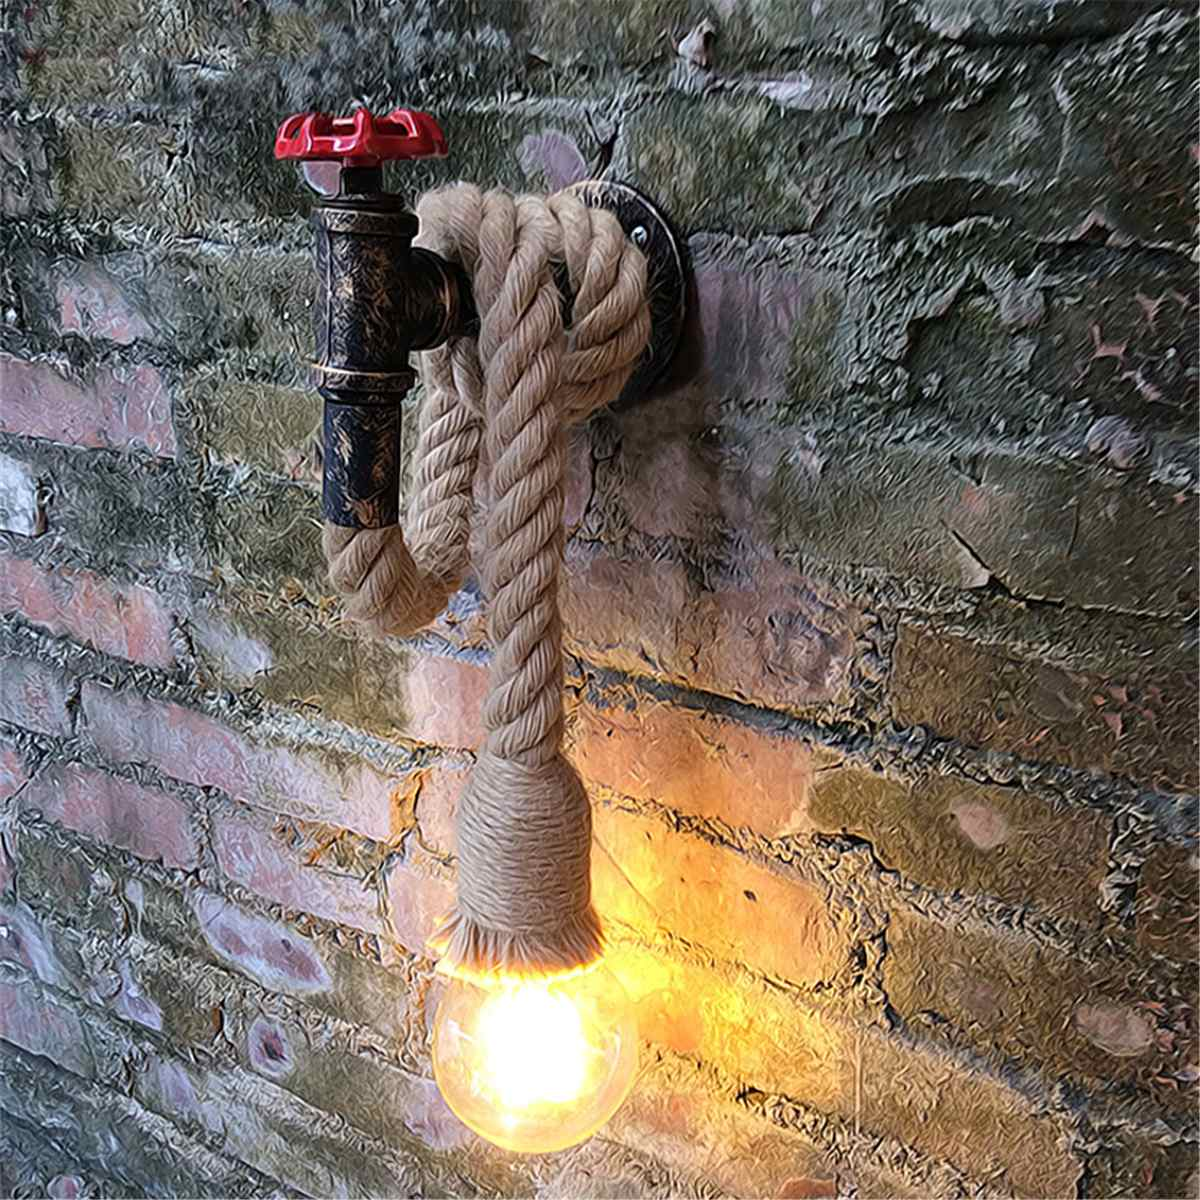 Metal Industrial Water Pipe Porch Light Vintage Wall Sconce Lamp Night Light Stairs Fixture Decoration Outdoor Lighting 80cm